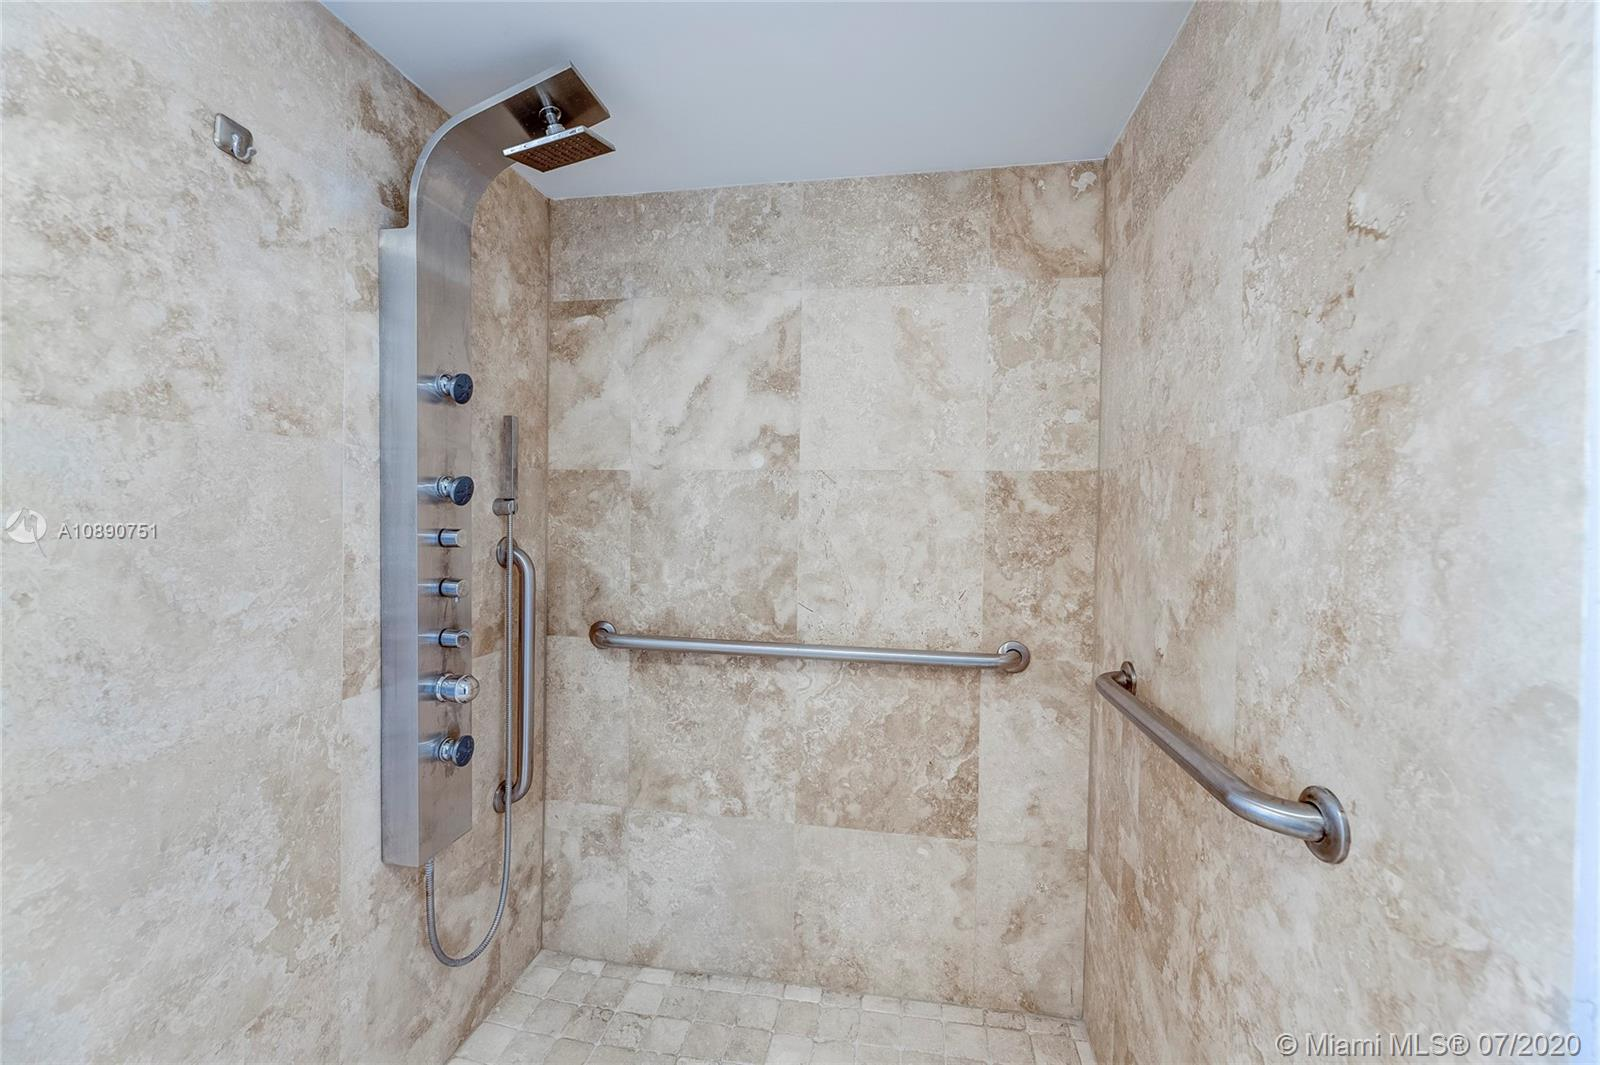 Photo of 425 Poinciana Island Drive #1444, Sunny Isles Beach, Florida, 33160 - Primary bedroom en suite bathroom with enlarged shower, safety features and comfort height toilet